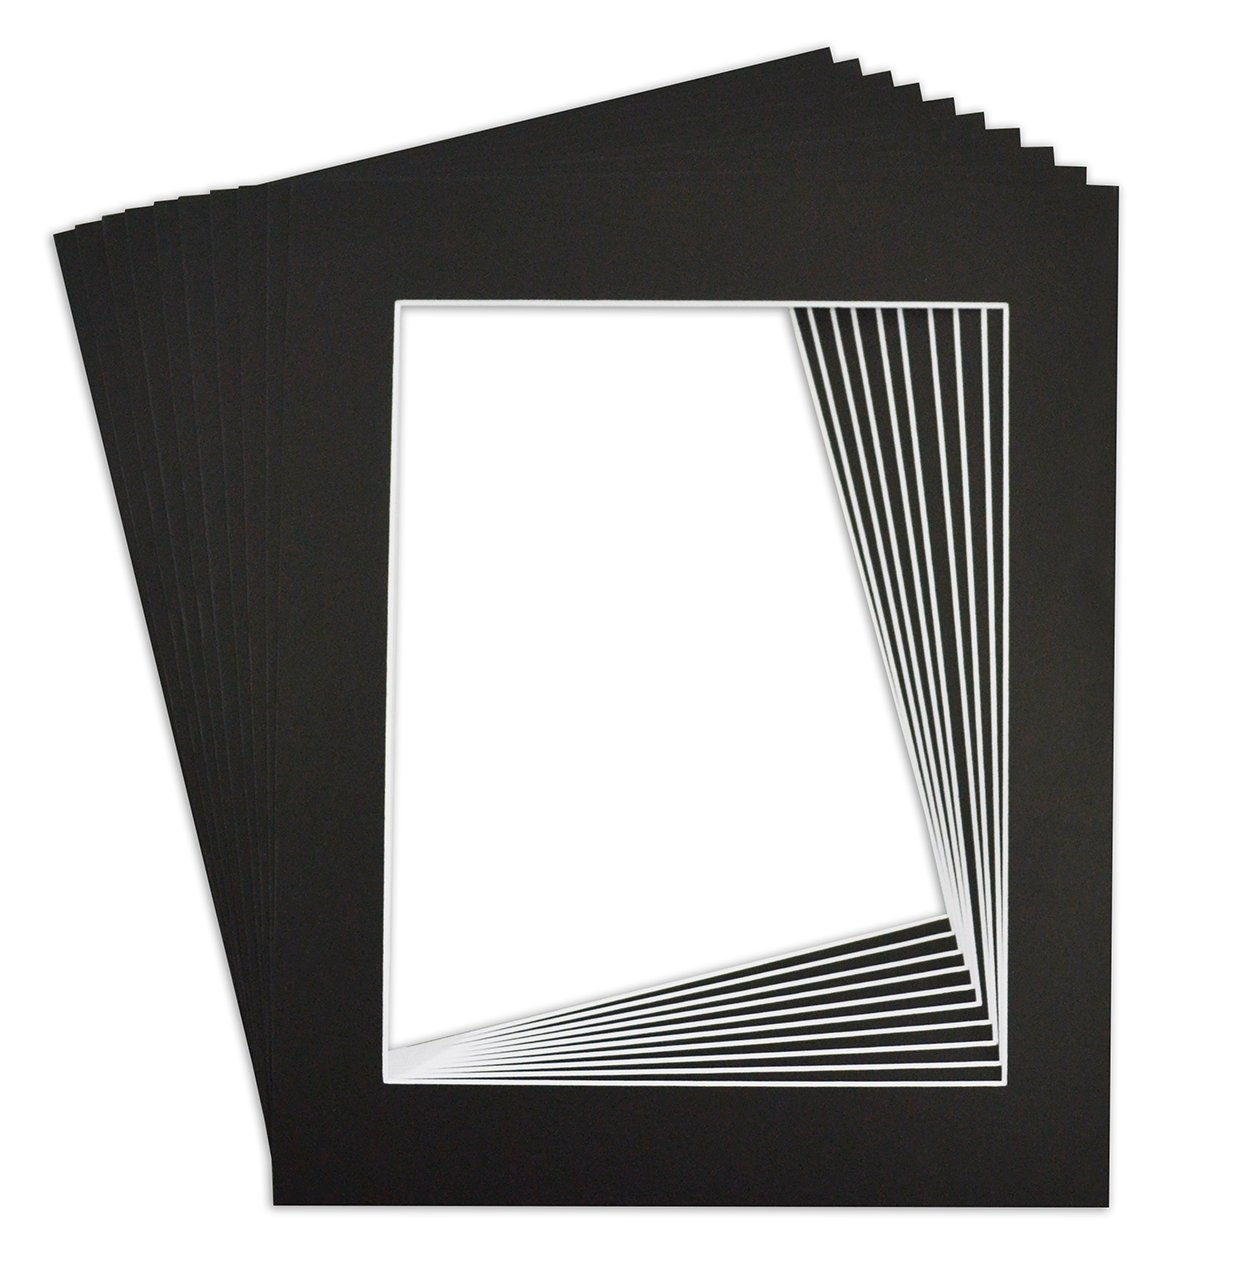 Golden State Art, Acid Free, Pack of 10 Black Pre-cut 11x14 Picture Mat for 8.5x11 Photo with White Core High Premier Bevel Cut Mattes